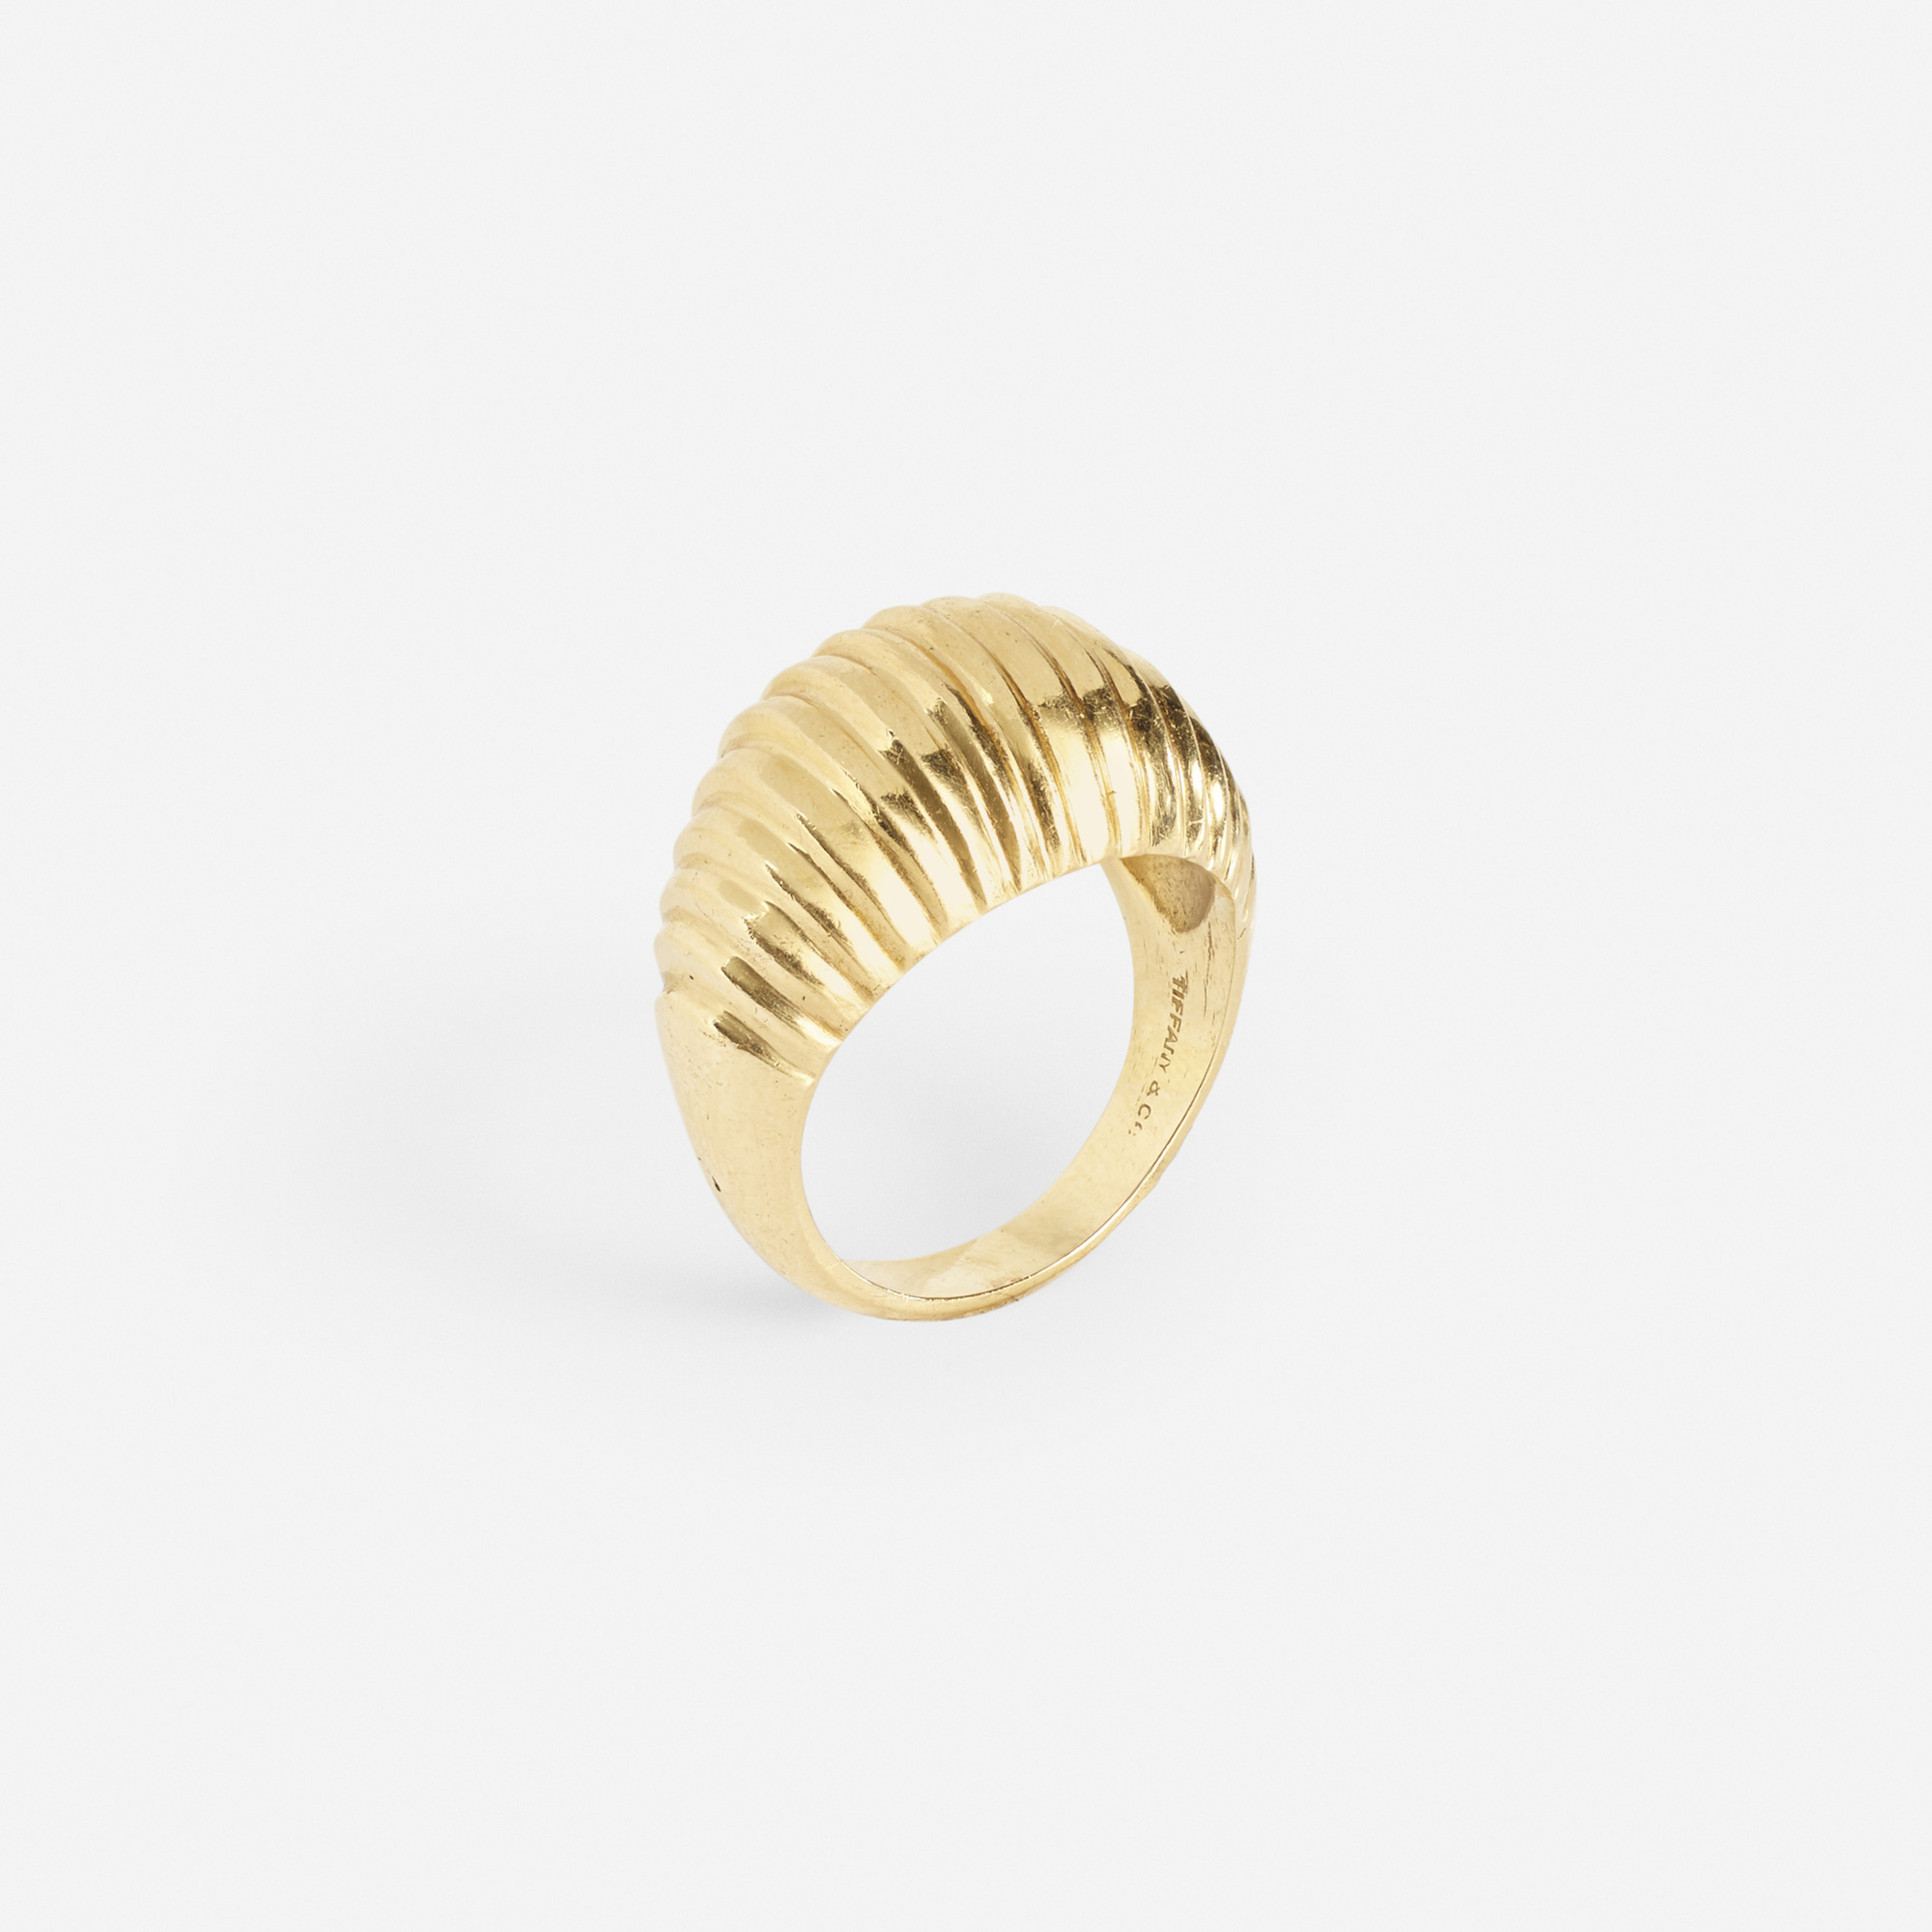 161: Tiffany & Co. / A gold ring (1 of 1)